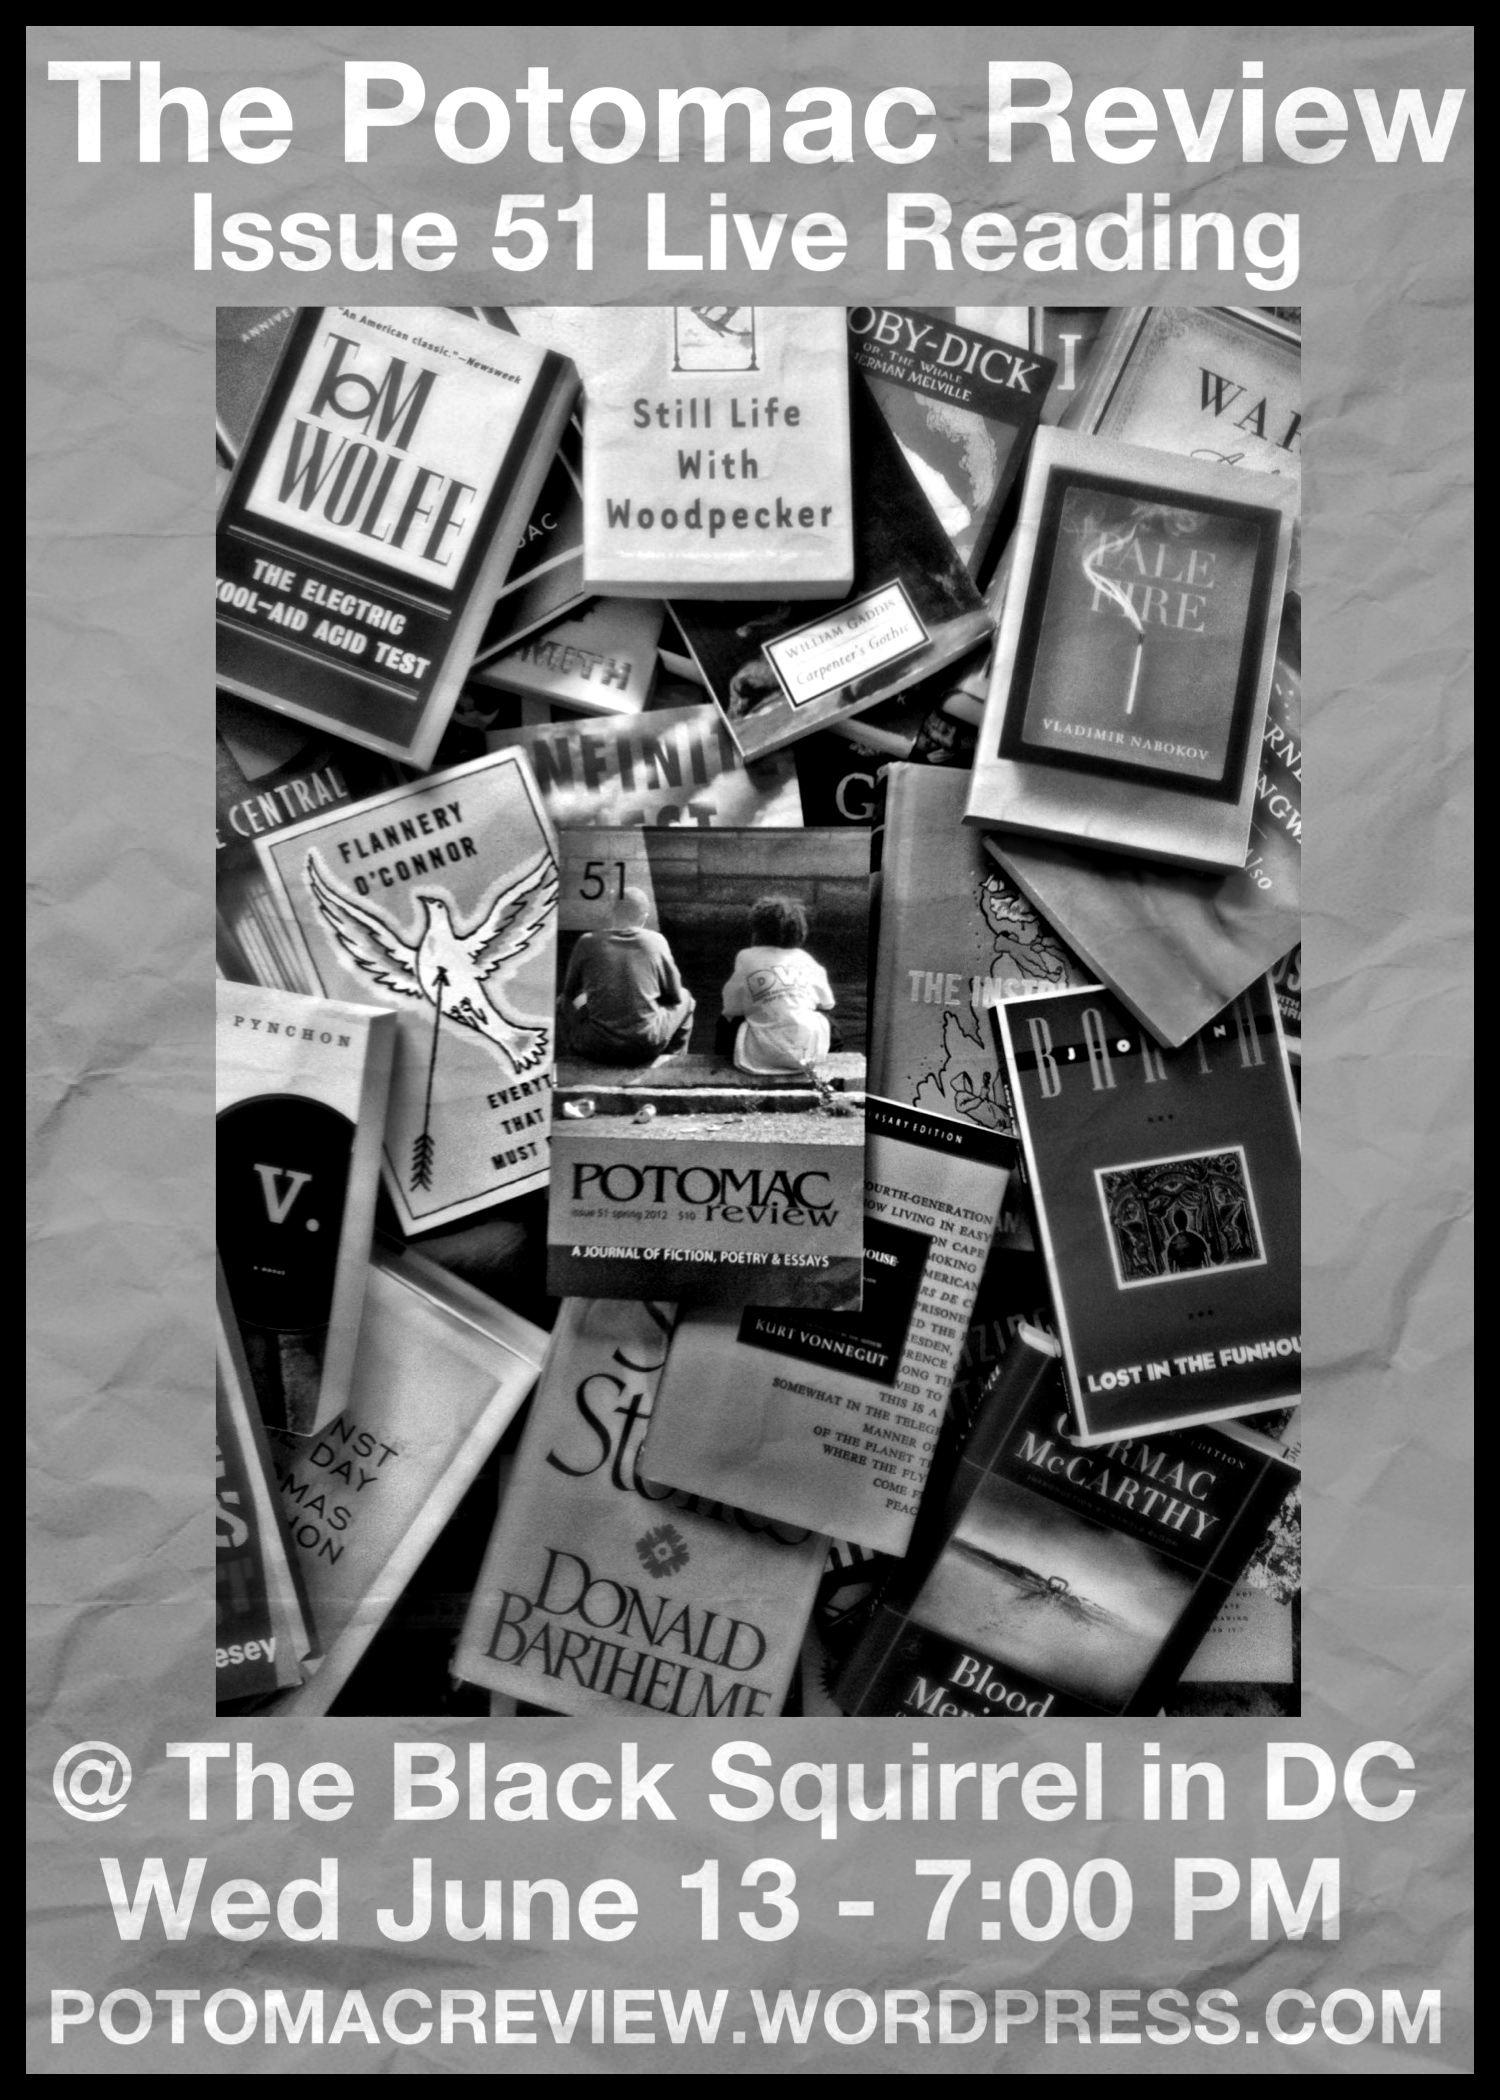 Issue 51 Launch Party – Tonight At The Black Squirrel!